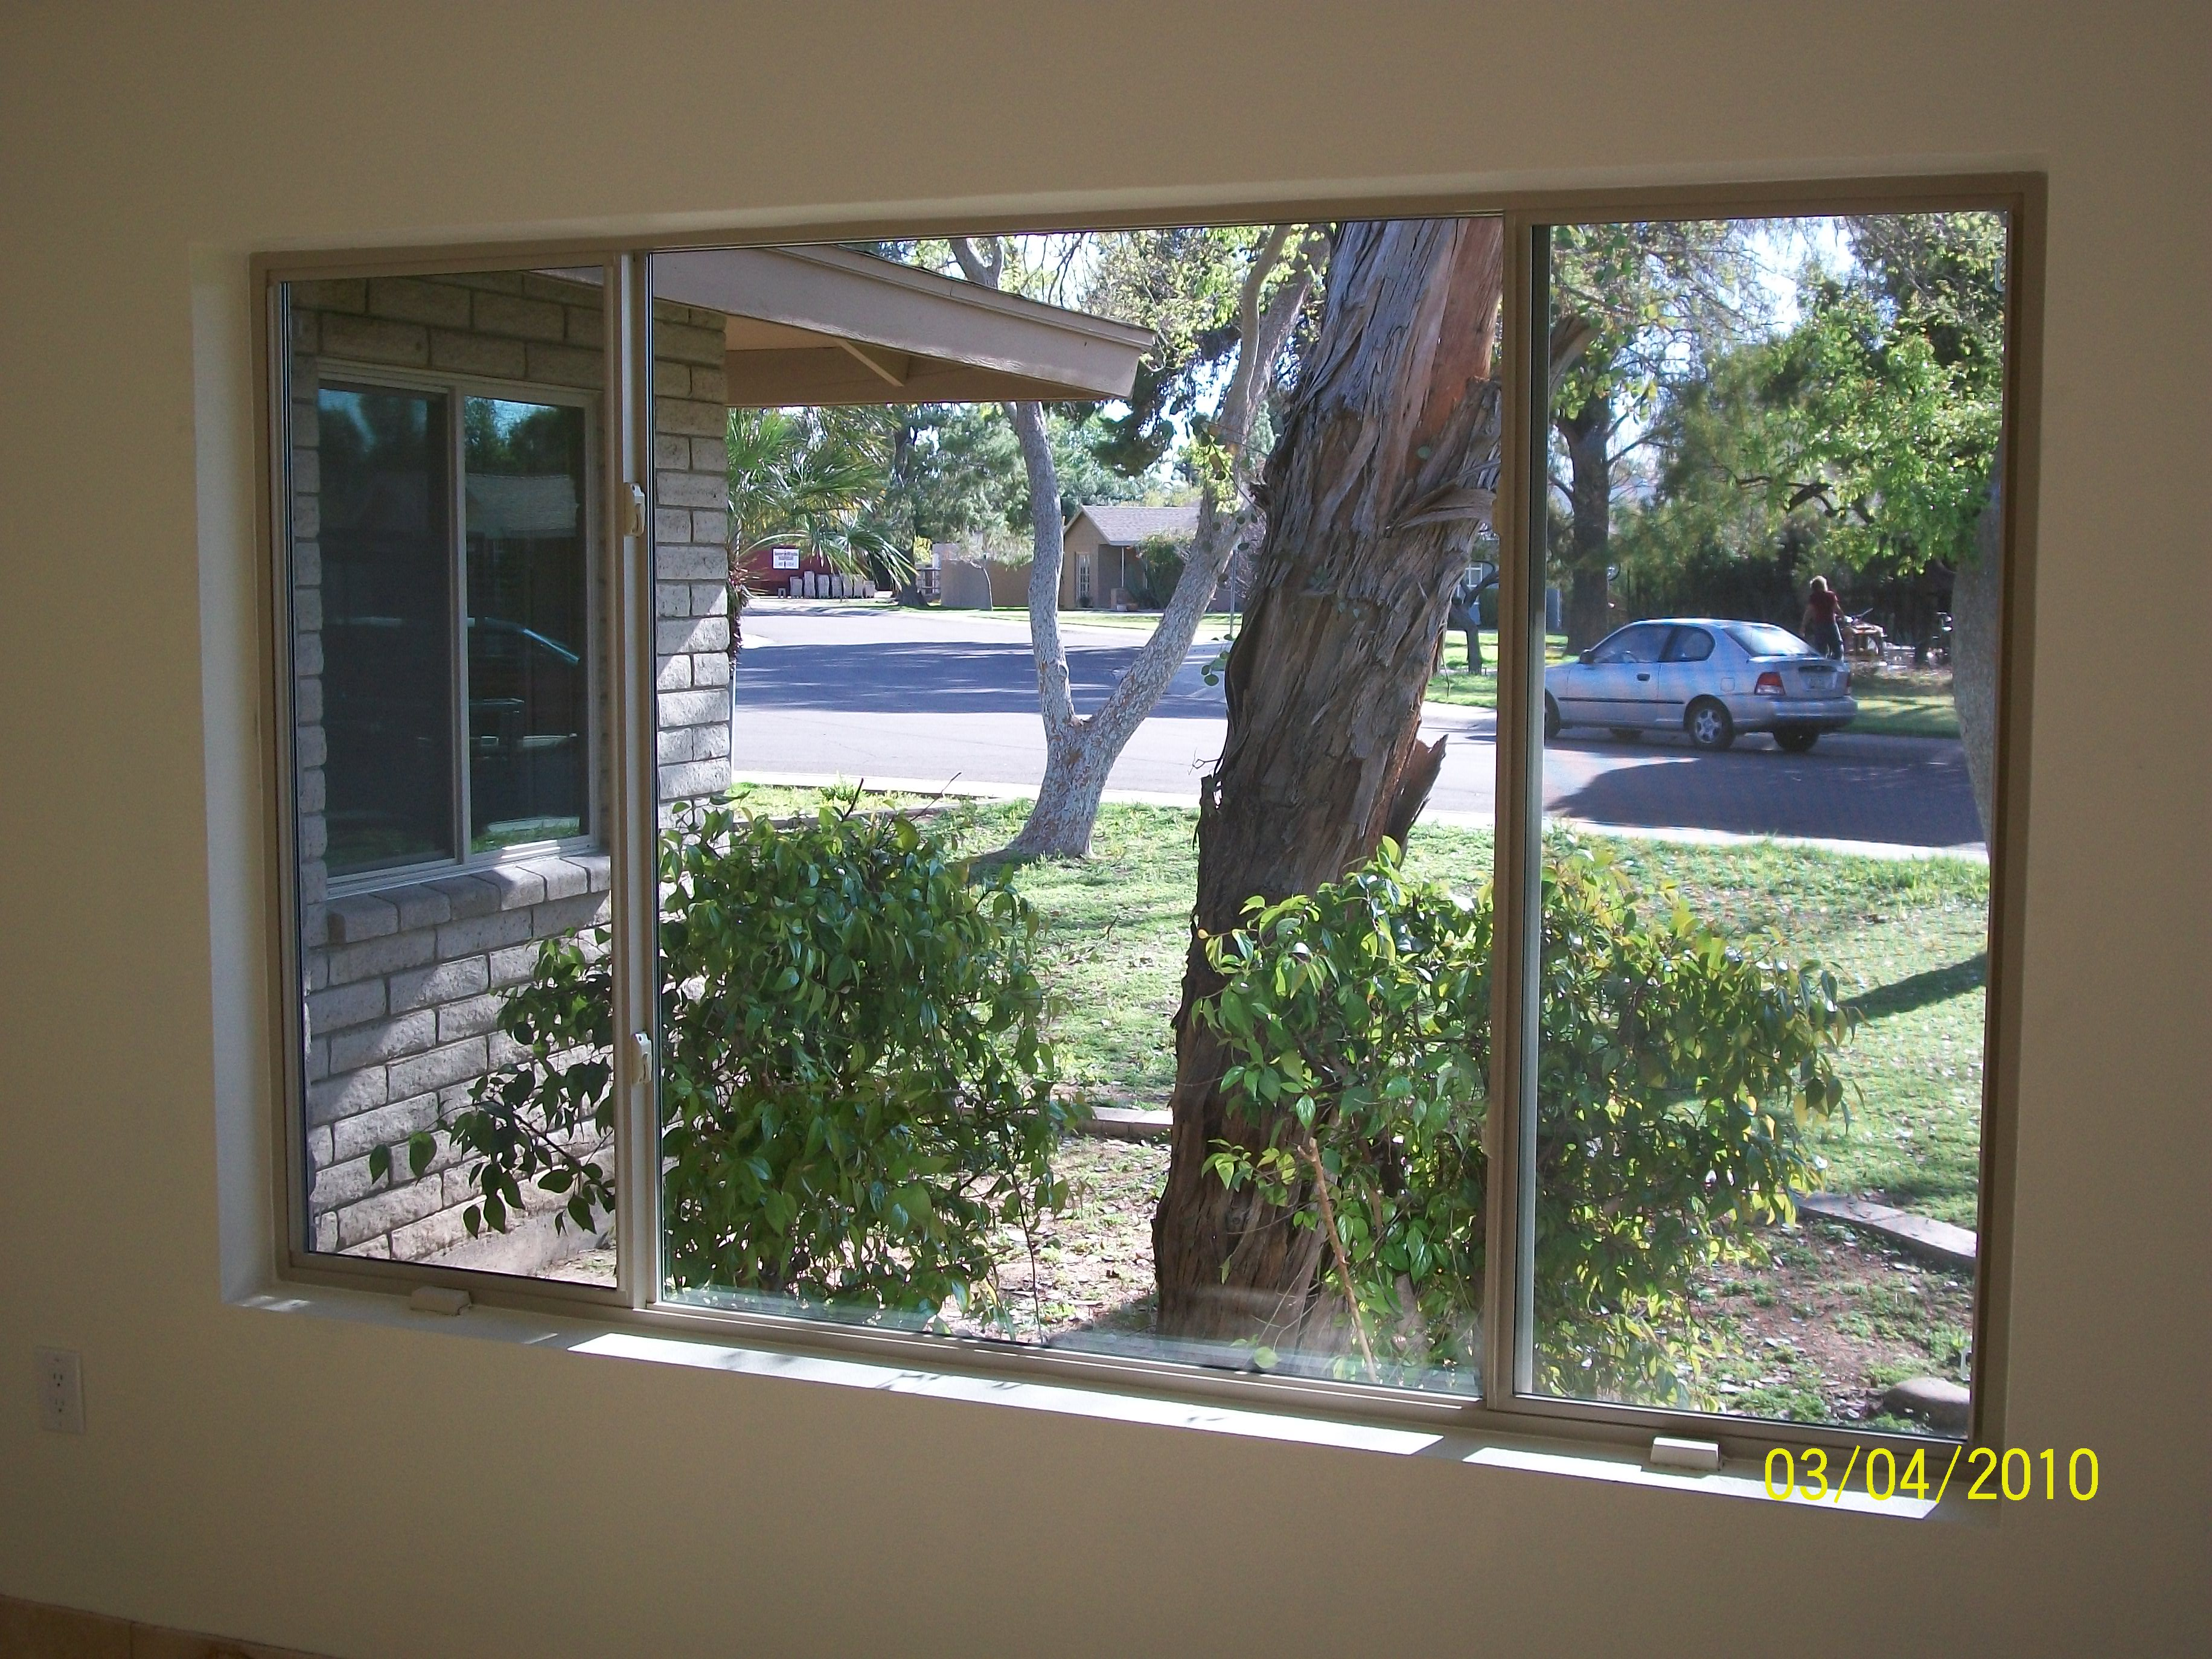 2748 #70814A Arizona's Best Windows. Quality Replacement Windows & Doors picture/photo Best Quality Doors 39593664